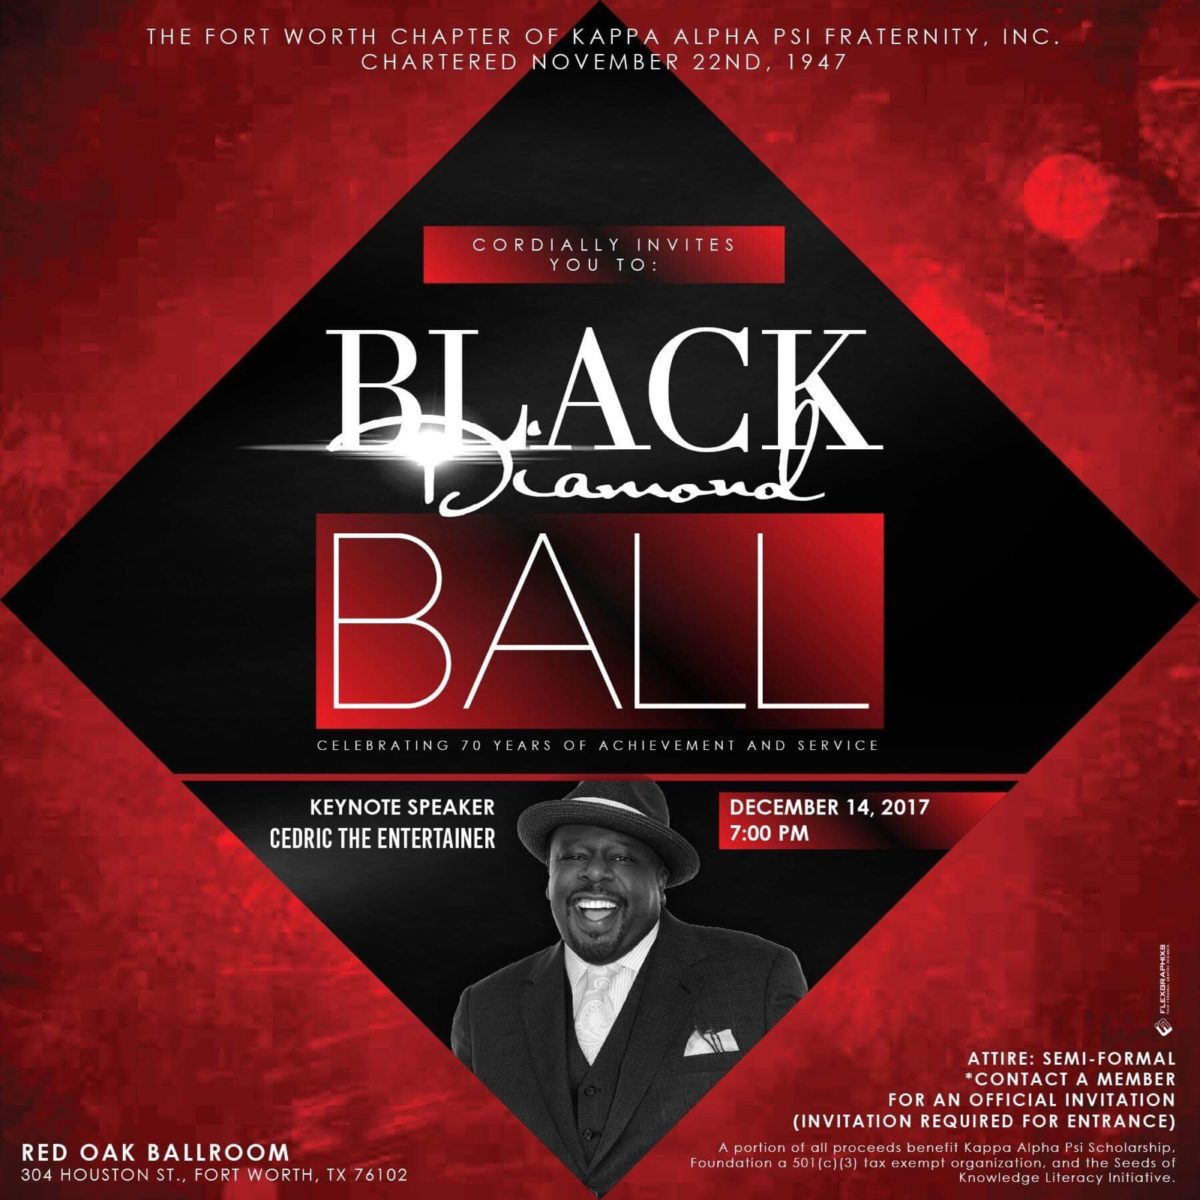 The Black Diamond Ball: FWAC 70th Anniversary Celebration